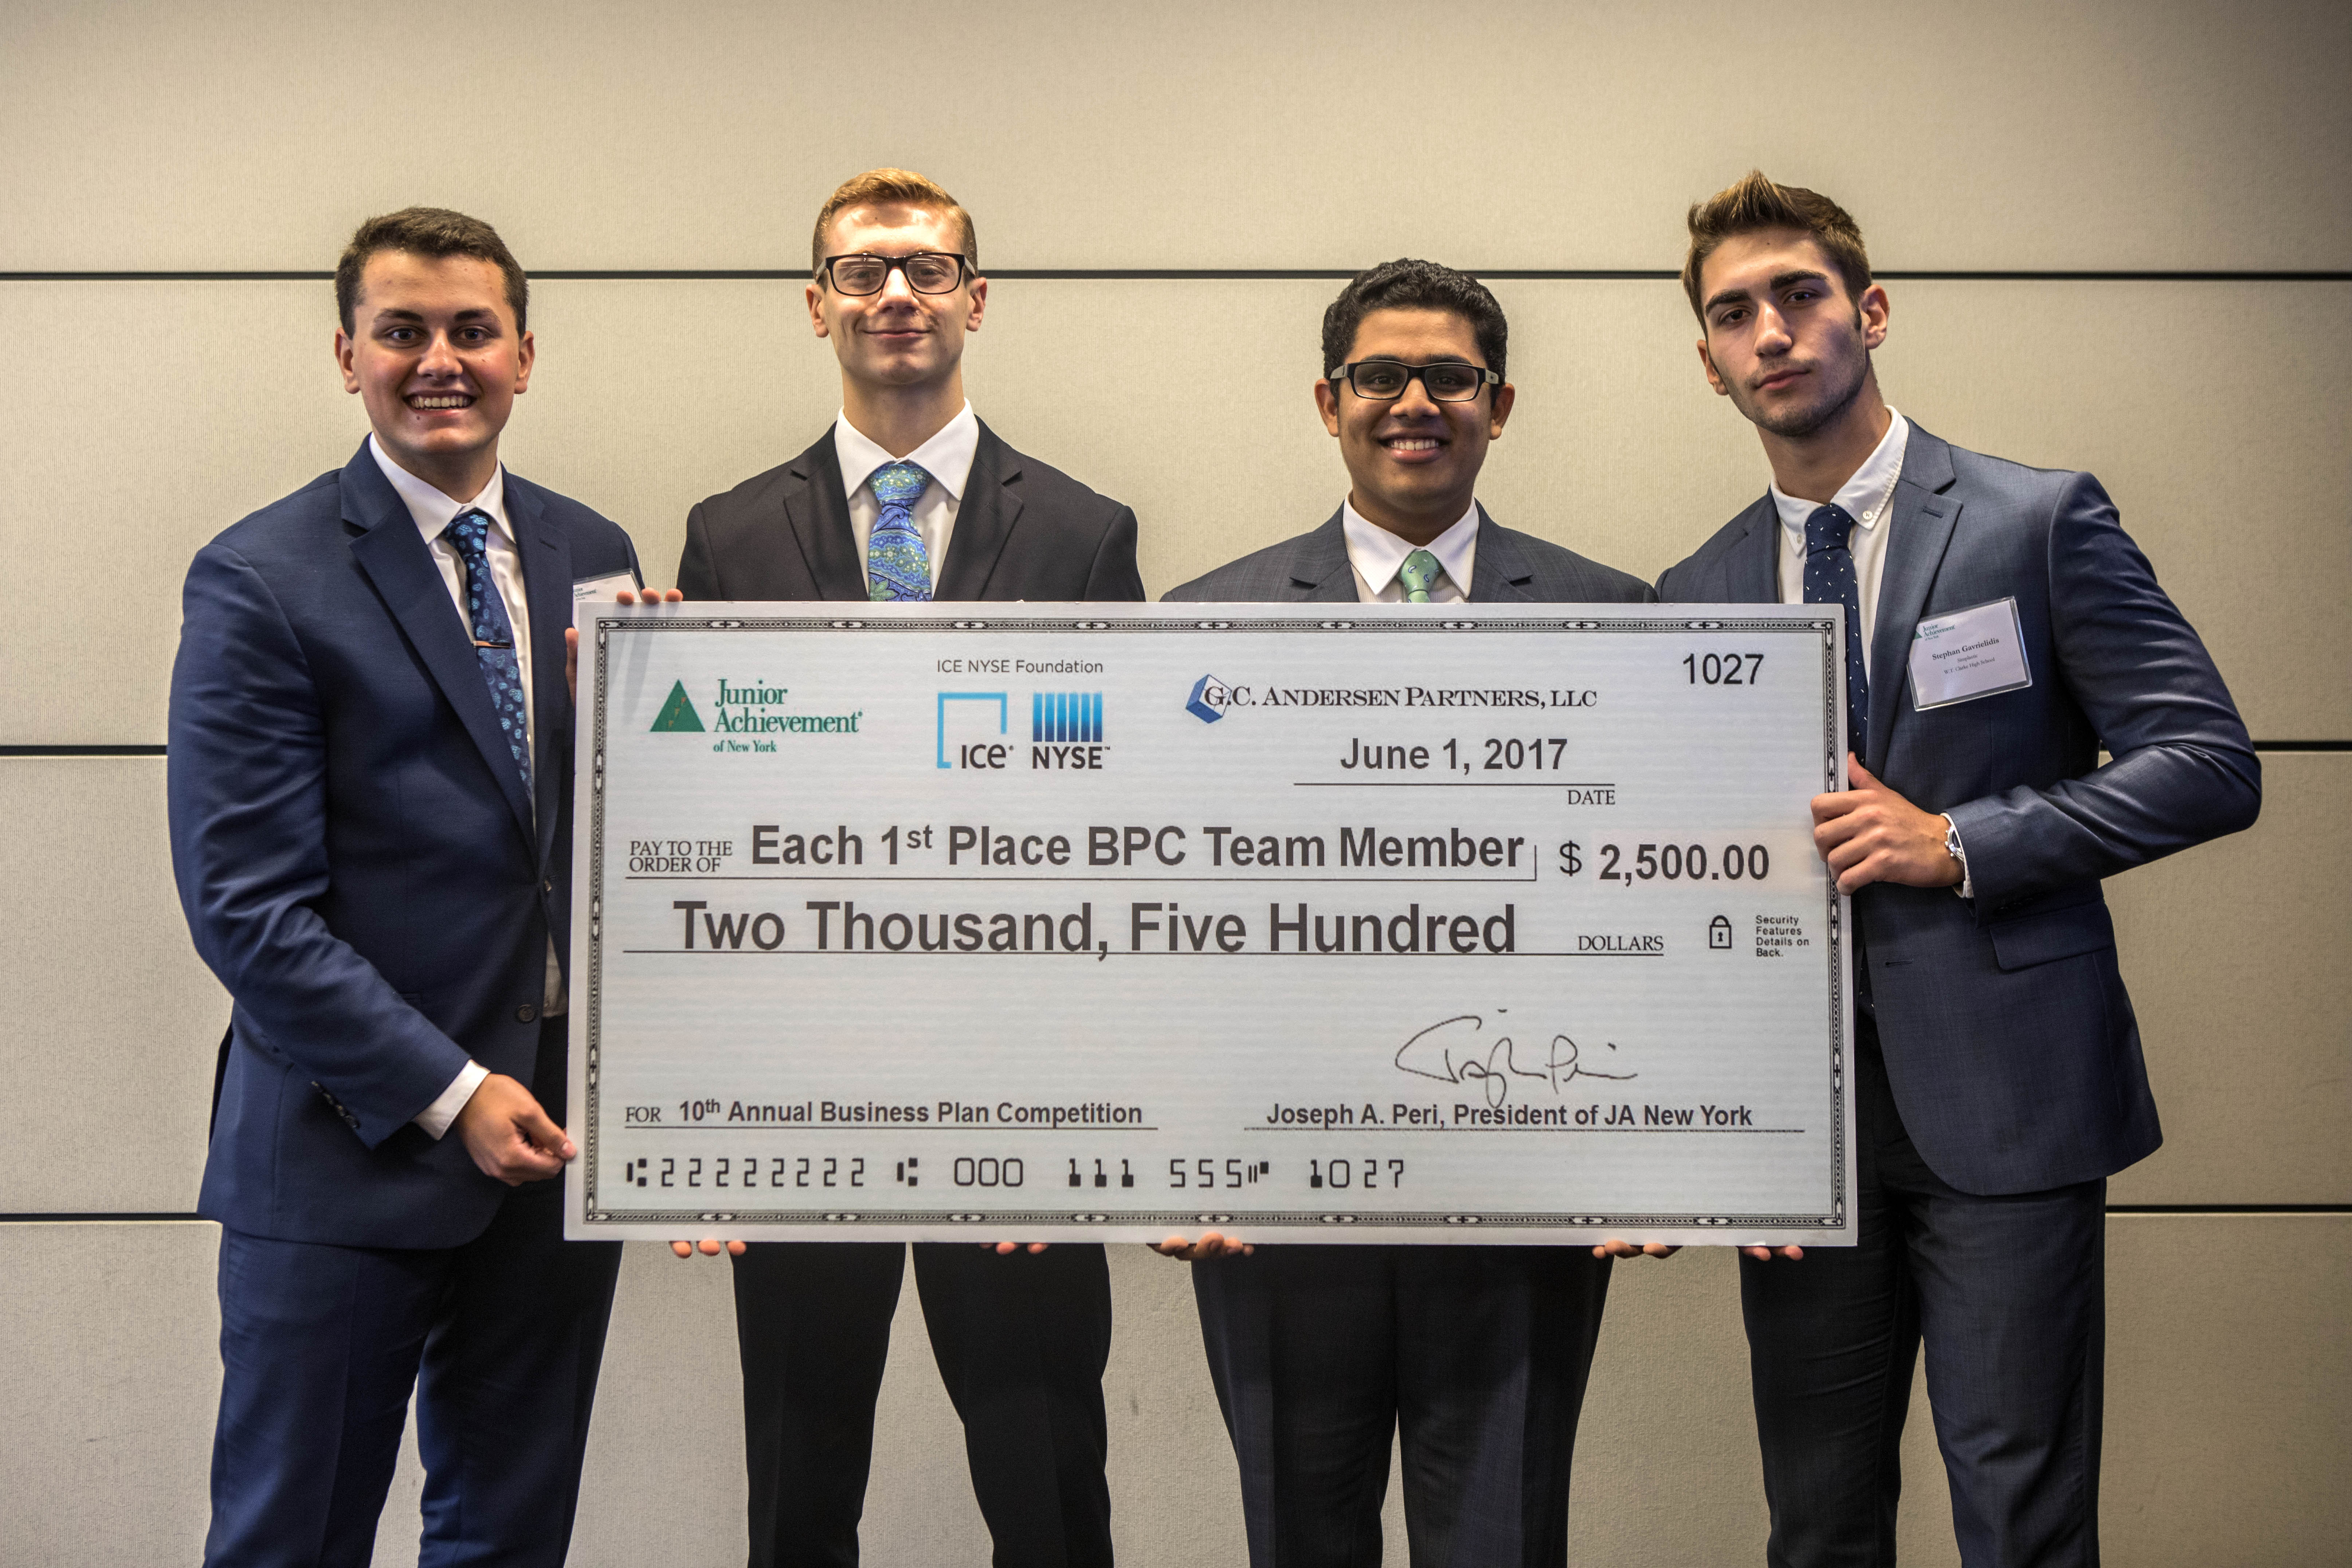 JA New York Business Plan Competition: From Classroom to Conference Room